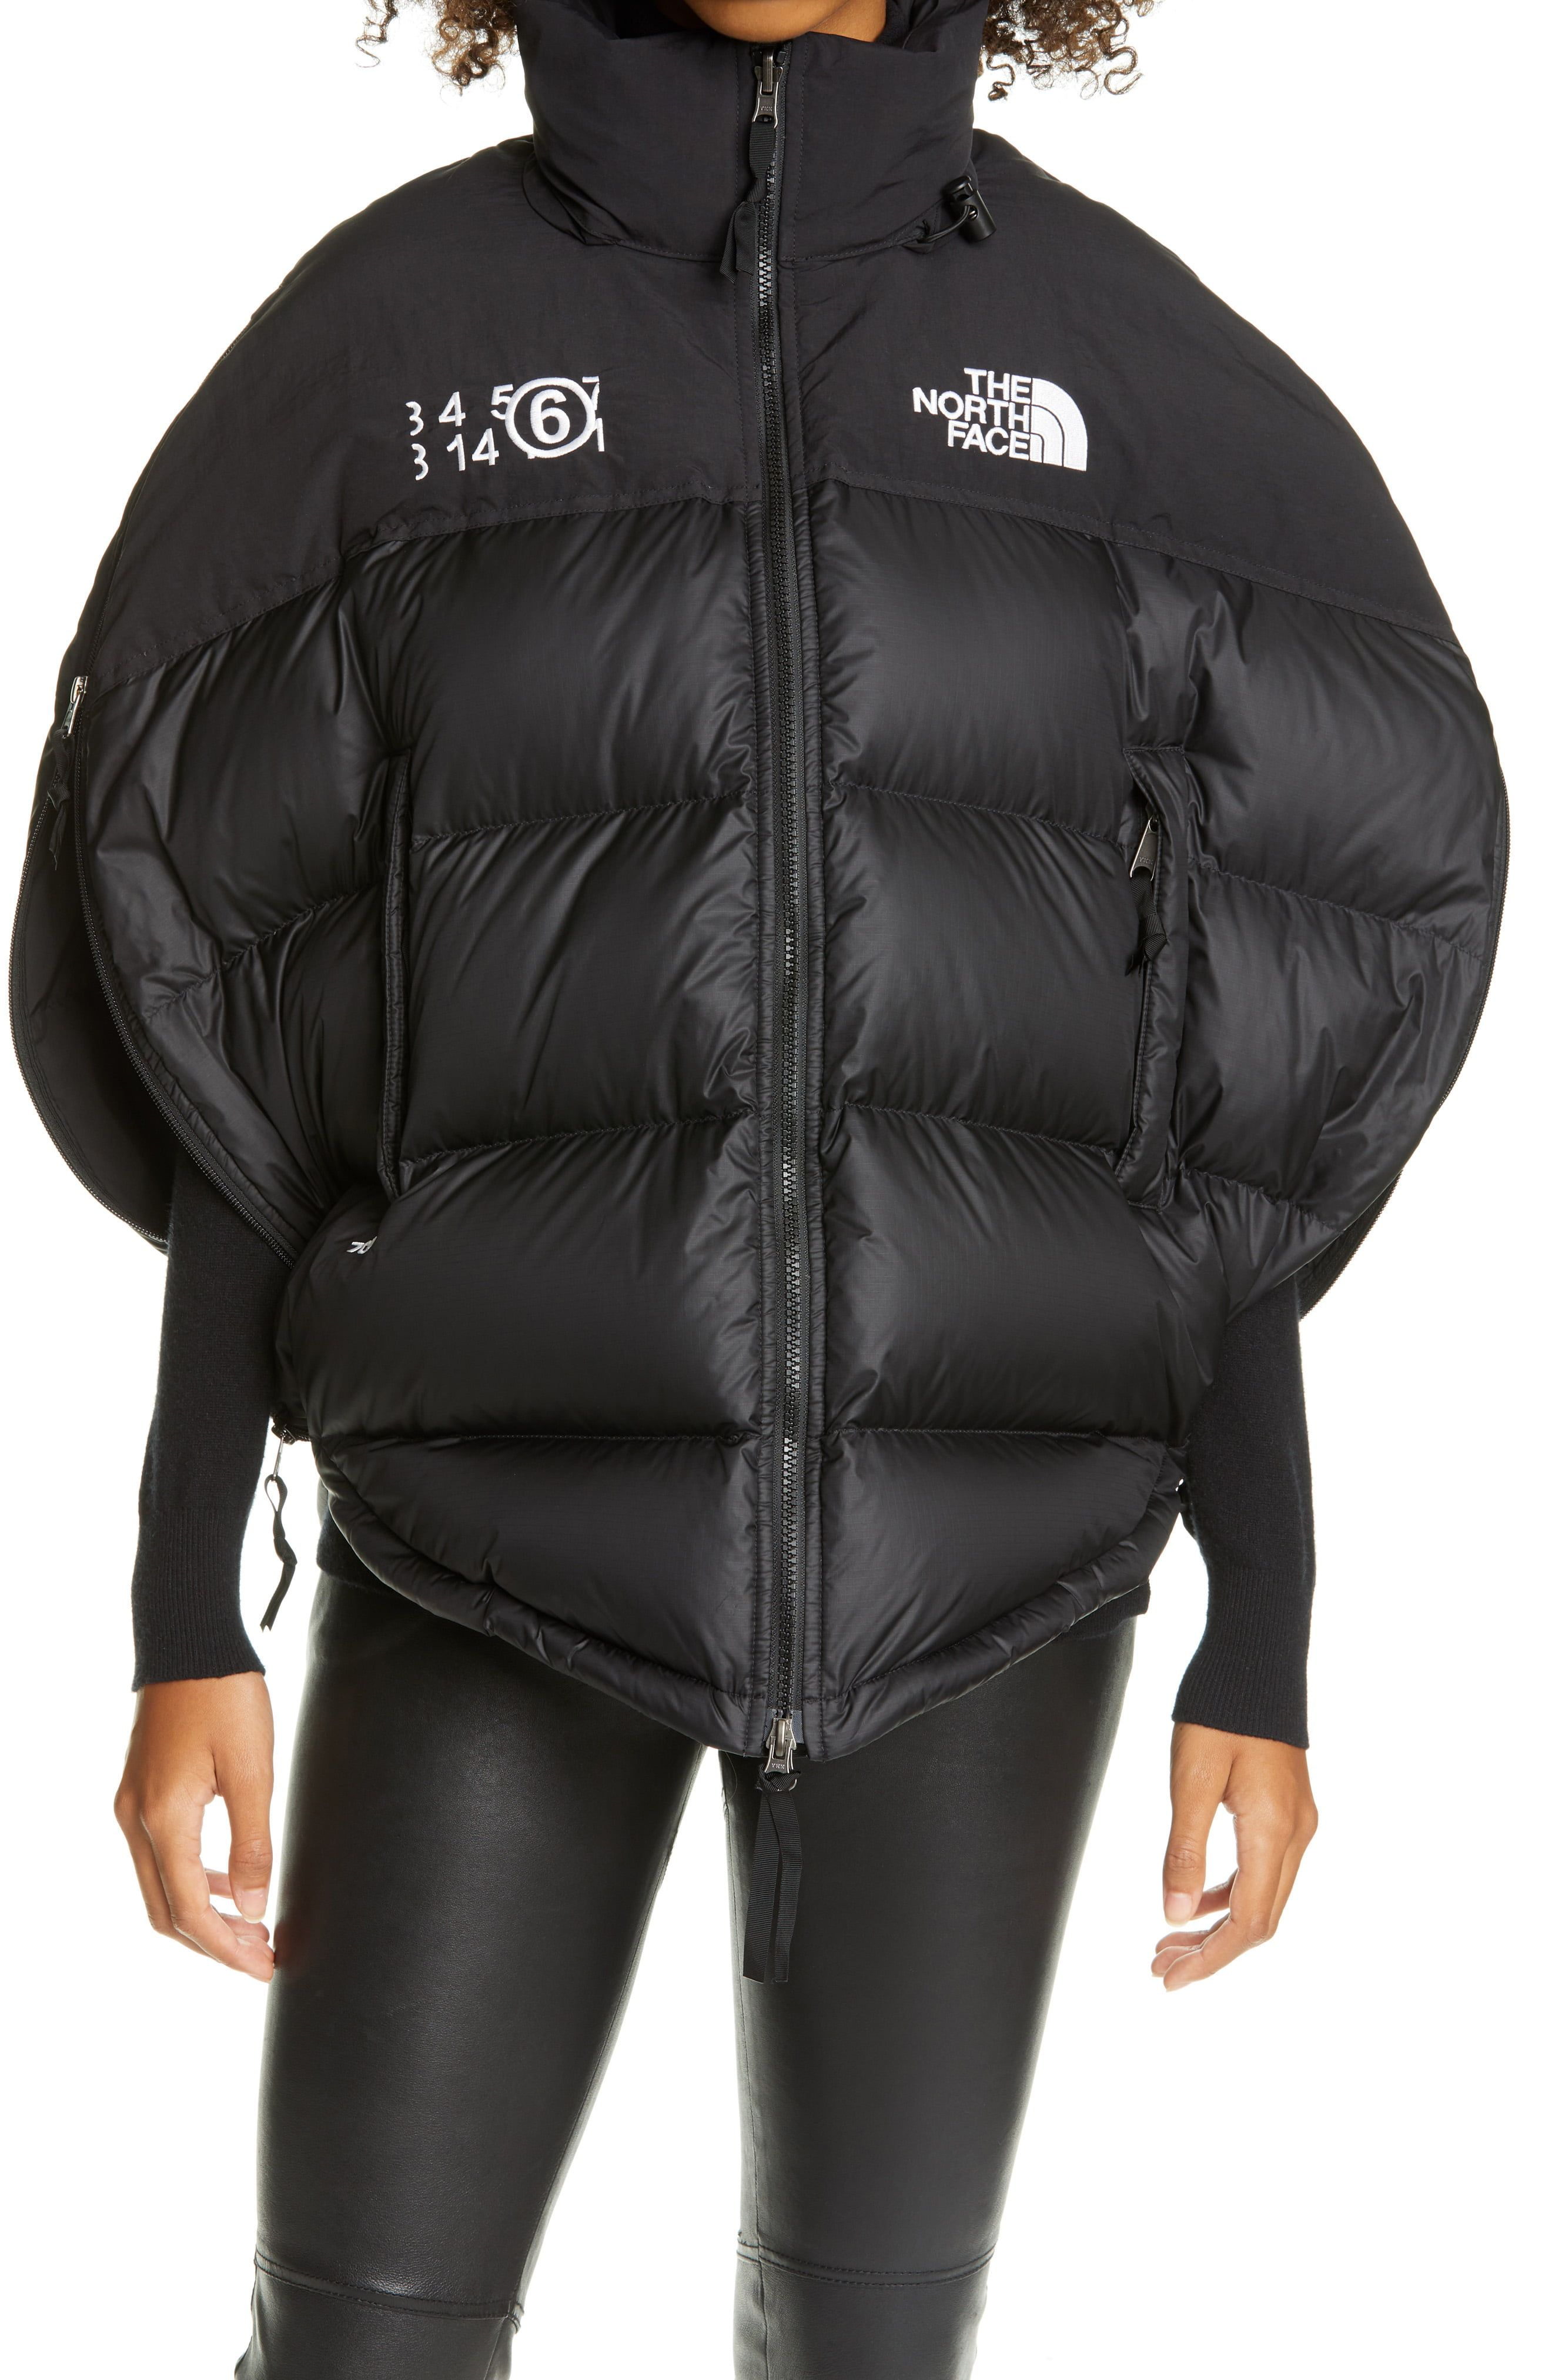 Mm6 Maison Margiela X The North Face 700 Fill Power Down Circle Puffer Jacket Nordstrom Mm6 Maison Margiela North Face 700 Puffer Jackets [ 4048 x 2640 Pixel ]